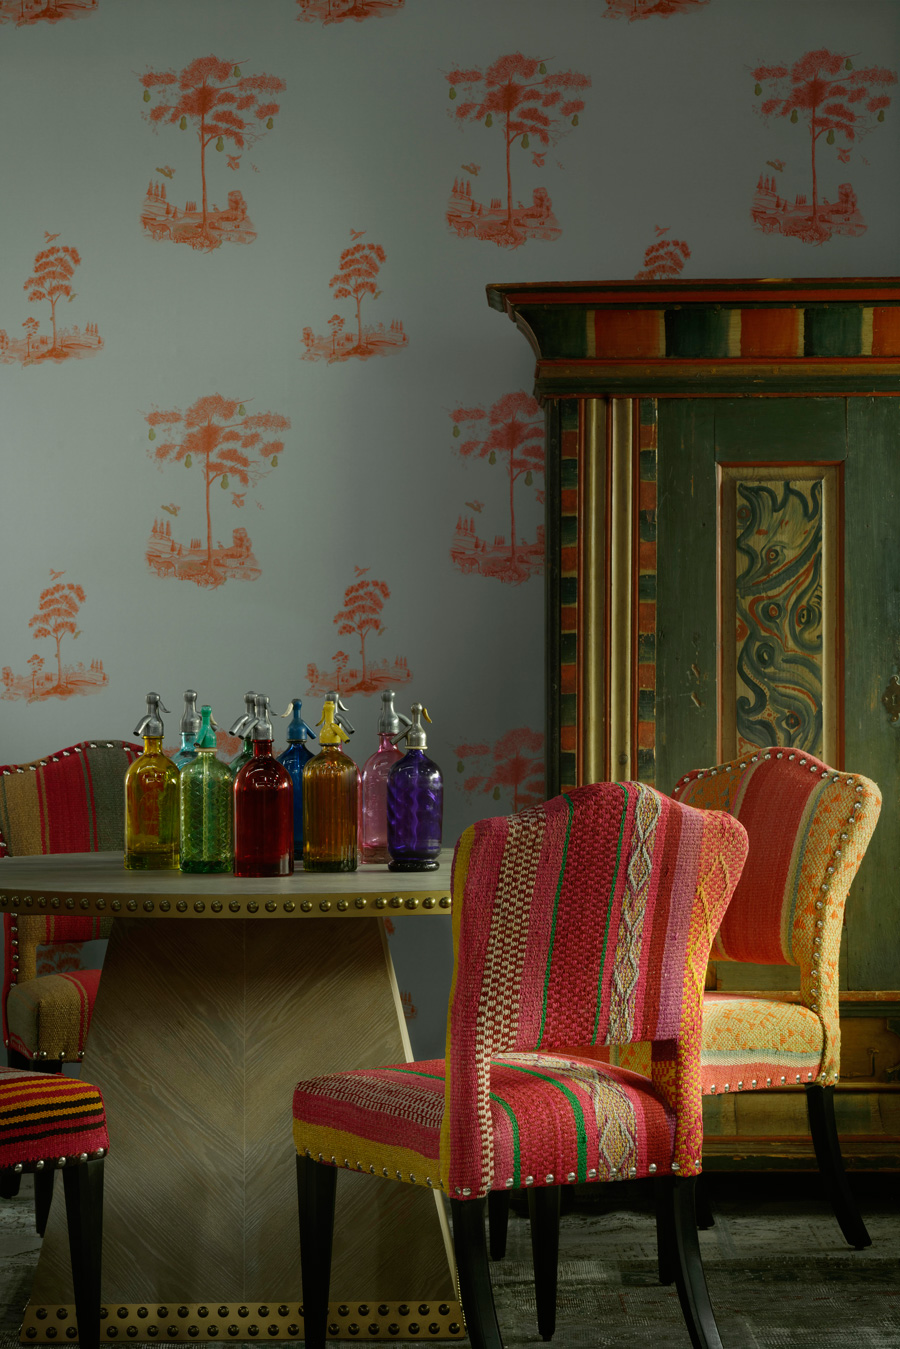 Pear-Tree-Sunset-Orange-Wallpaper-with-Faubourg-Dining-Table-and-Bespoke-Bacall-Chairs-in-Original-Guatlemalan-Textiles.jpg